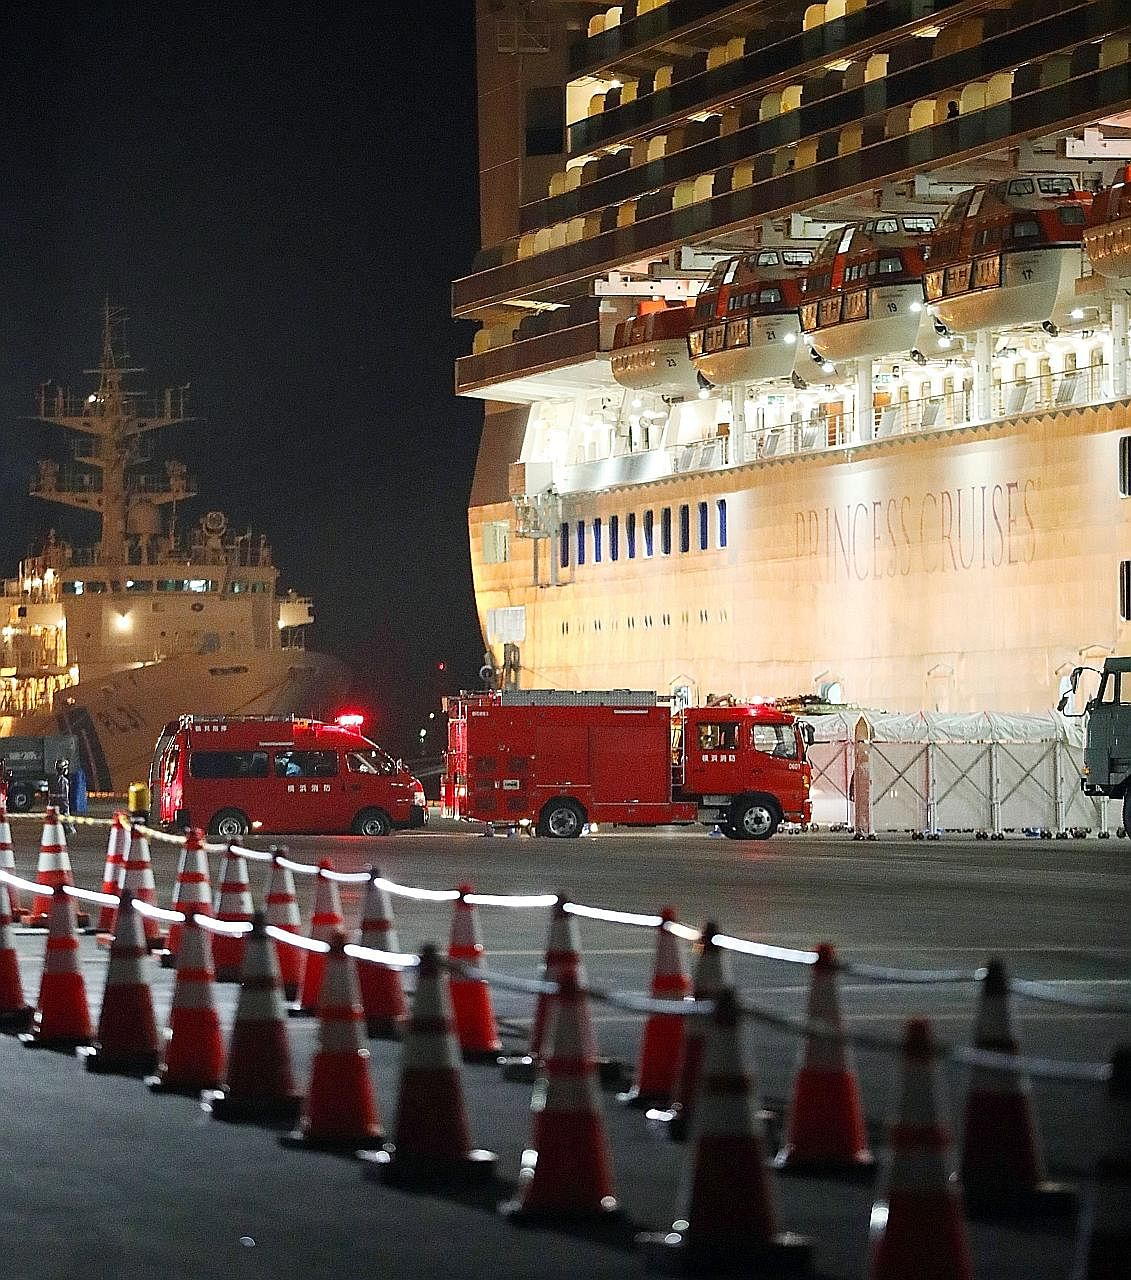 Fire brigade vehicles arriving at the Daikoku Pier Cruise Terminal where the Diamond Princess cruise ship was docked in Yokohama, south of Tokyo, yesterday. The ship, which arrived off Japan's coast early last week, is expected to stay in quarantine